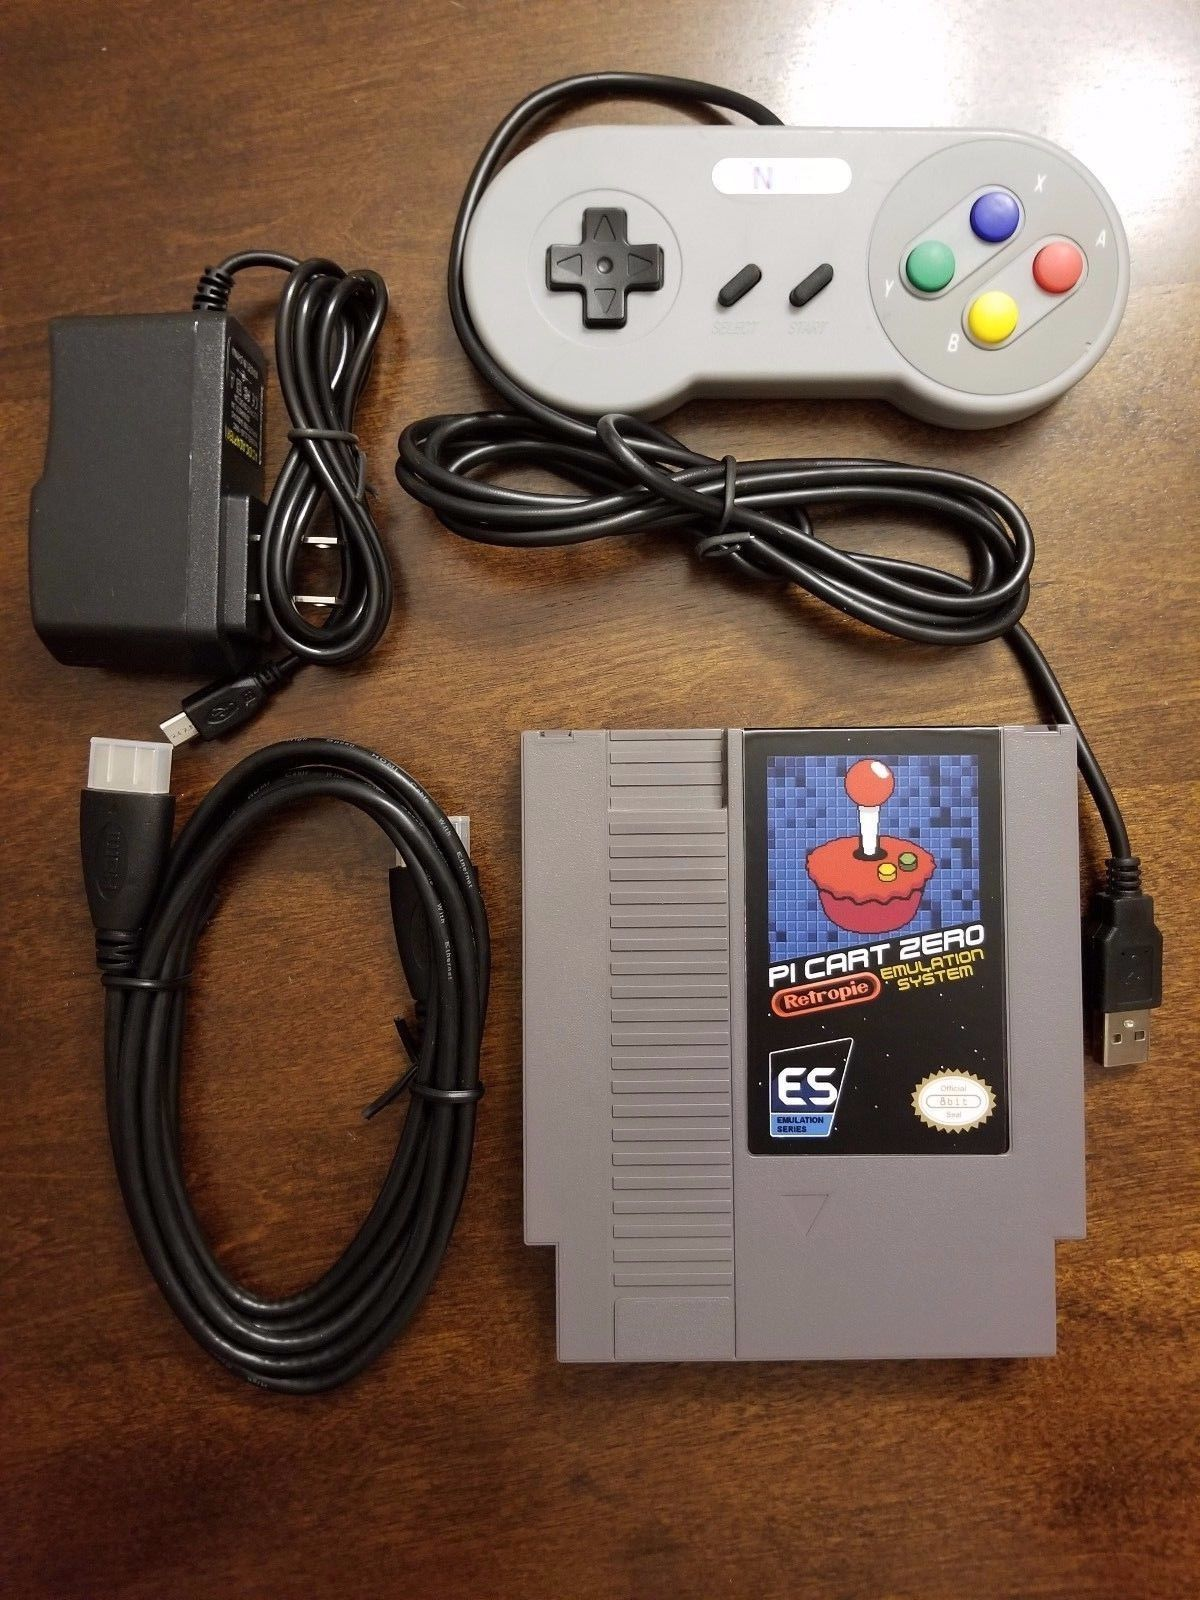 Details about RetroPie Pi Cart Zero Console, 2500+ games, 2